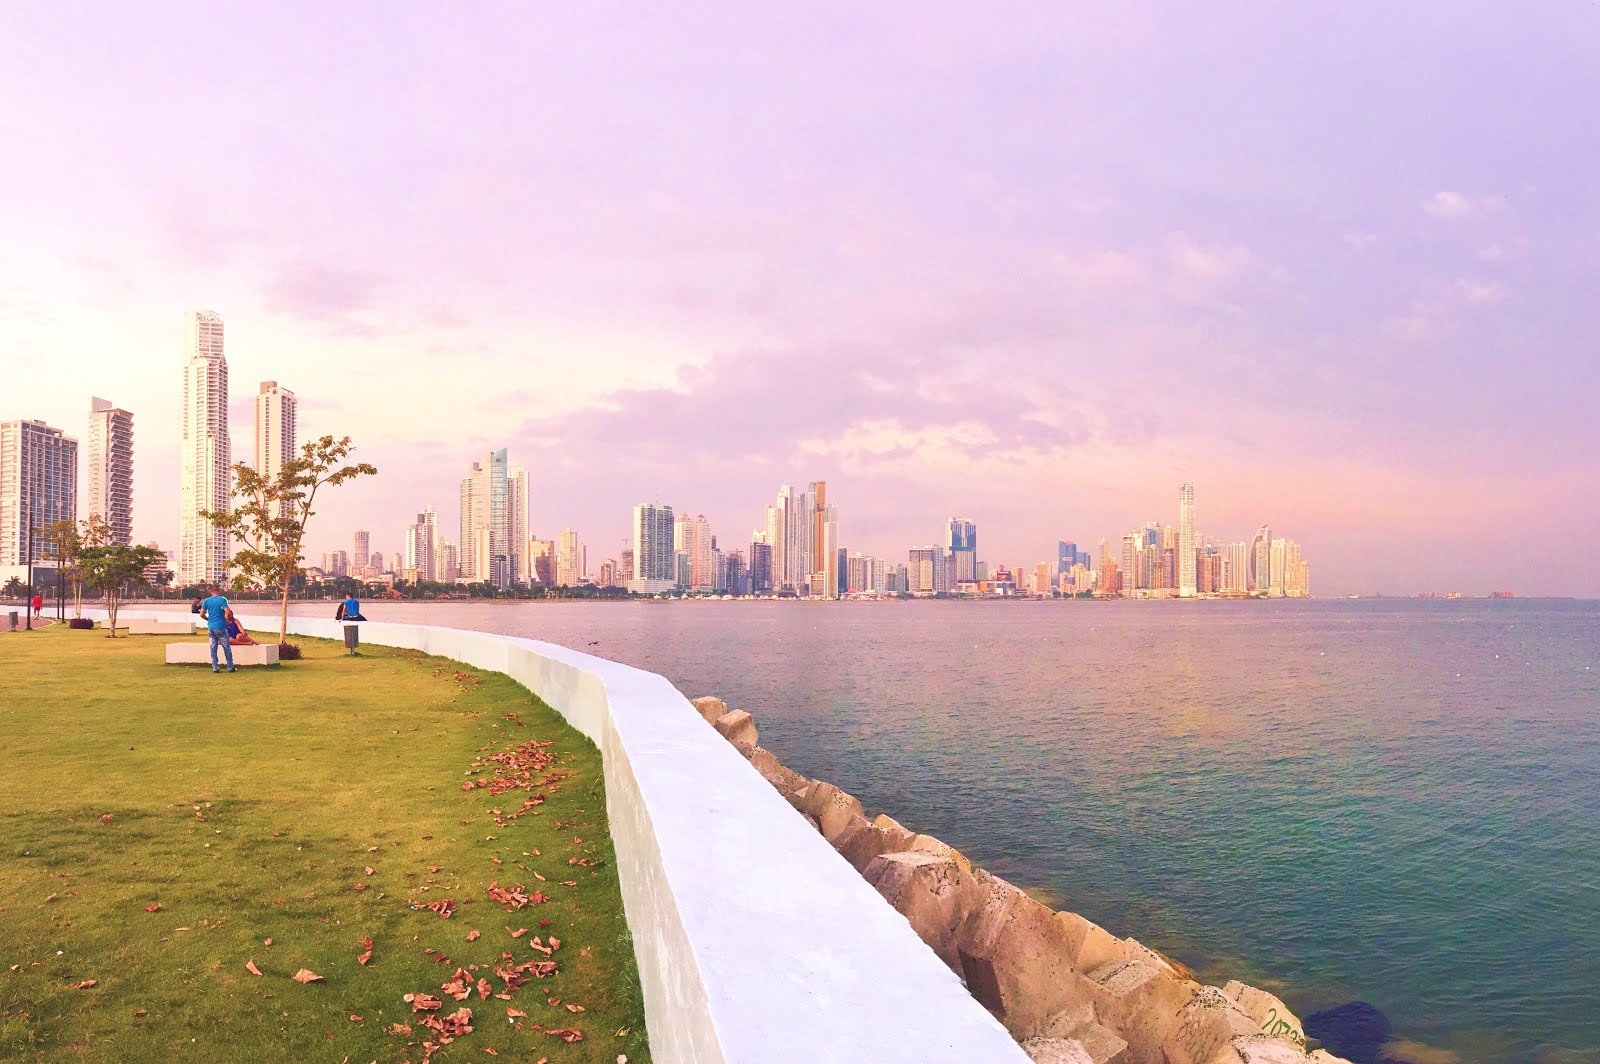 Skyline of Panama City, Panama